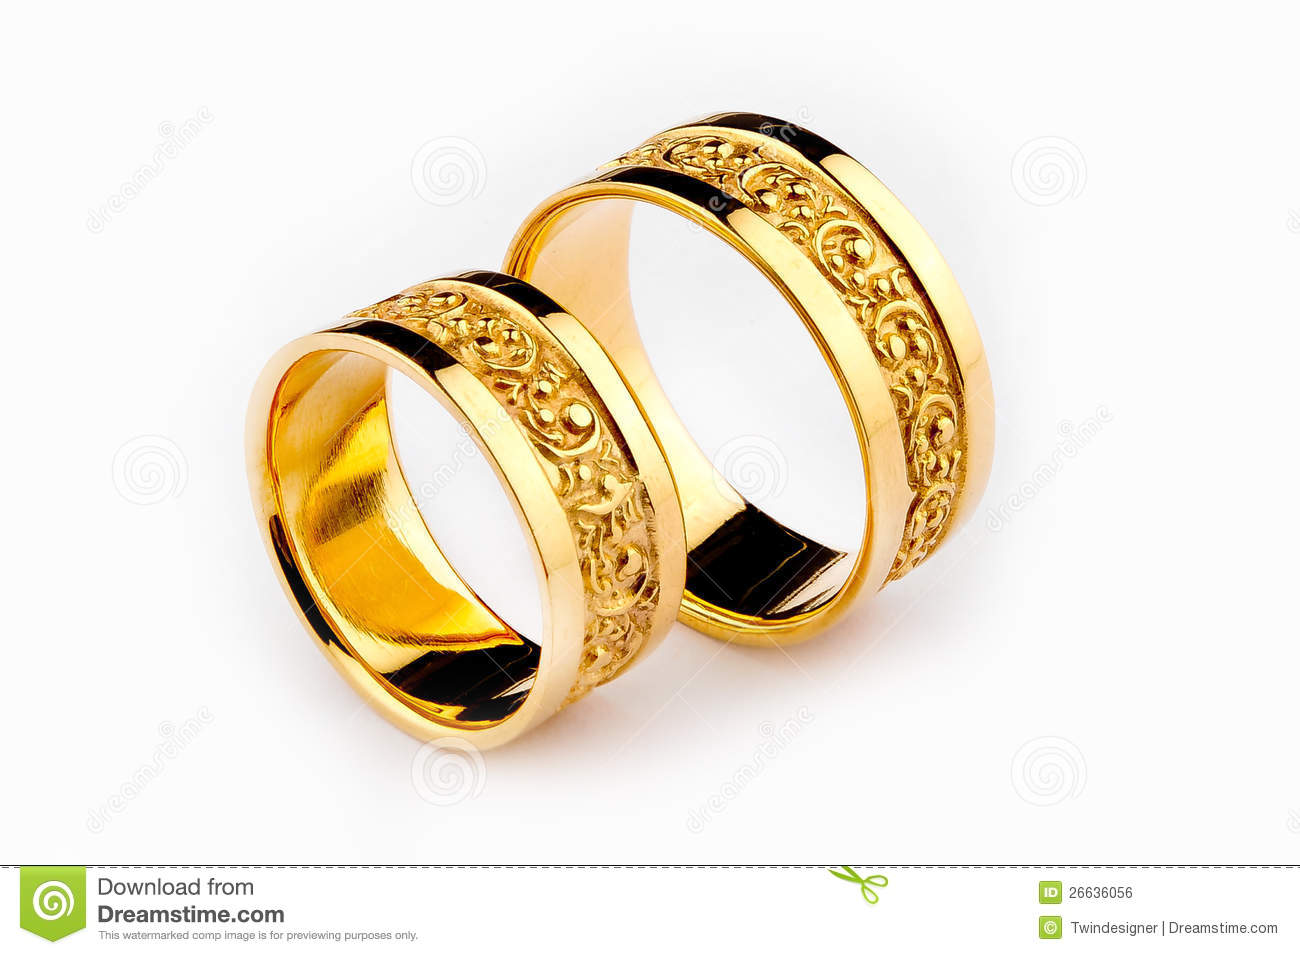 gold wedding rings stock photo image of bride romantic 26636056 - Wedding Rings Gold